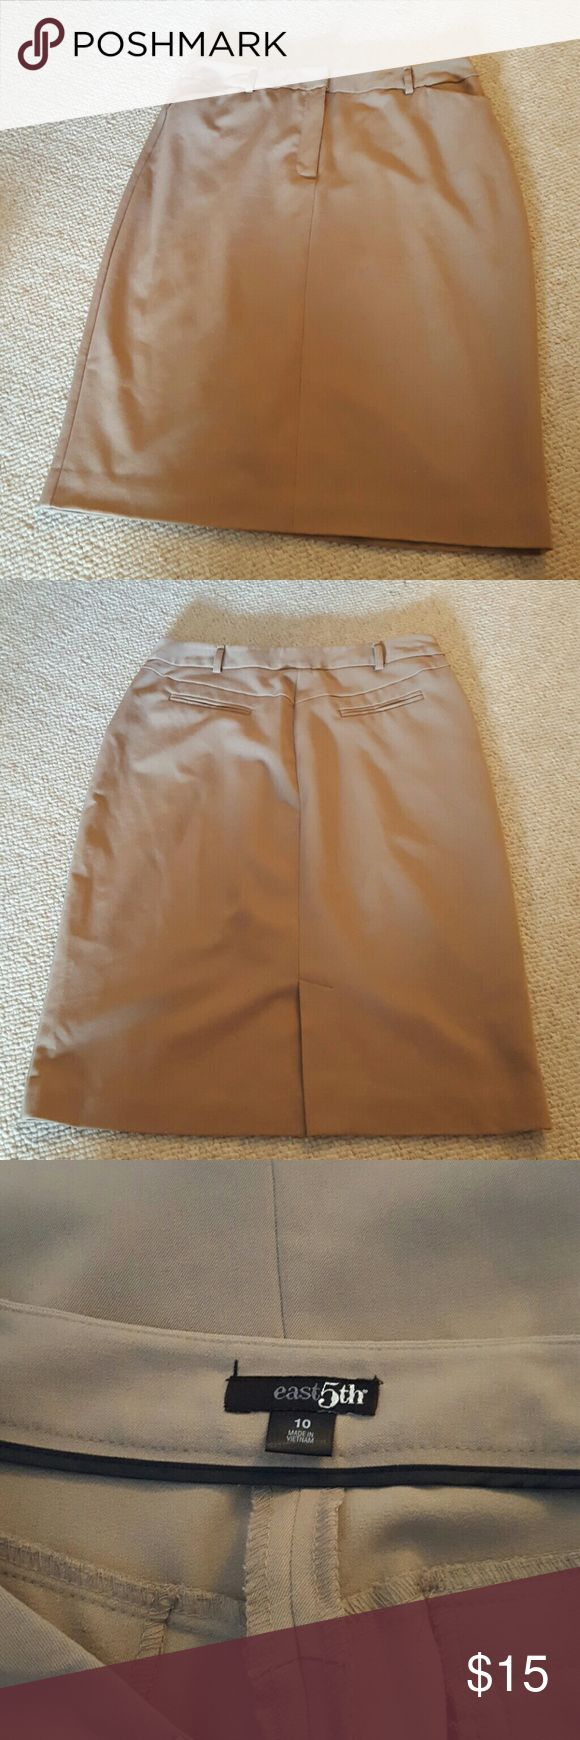 Stretch tan pencil skirt Perfect work to weekend! Front zip with back welt pockets. Stretchy! East 5th Skirts Pencil